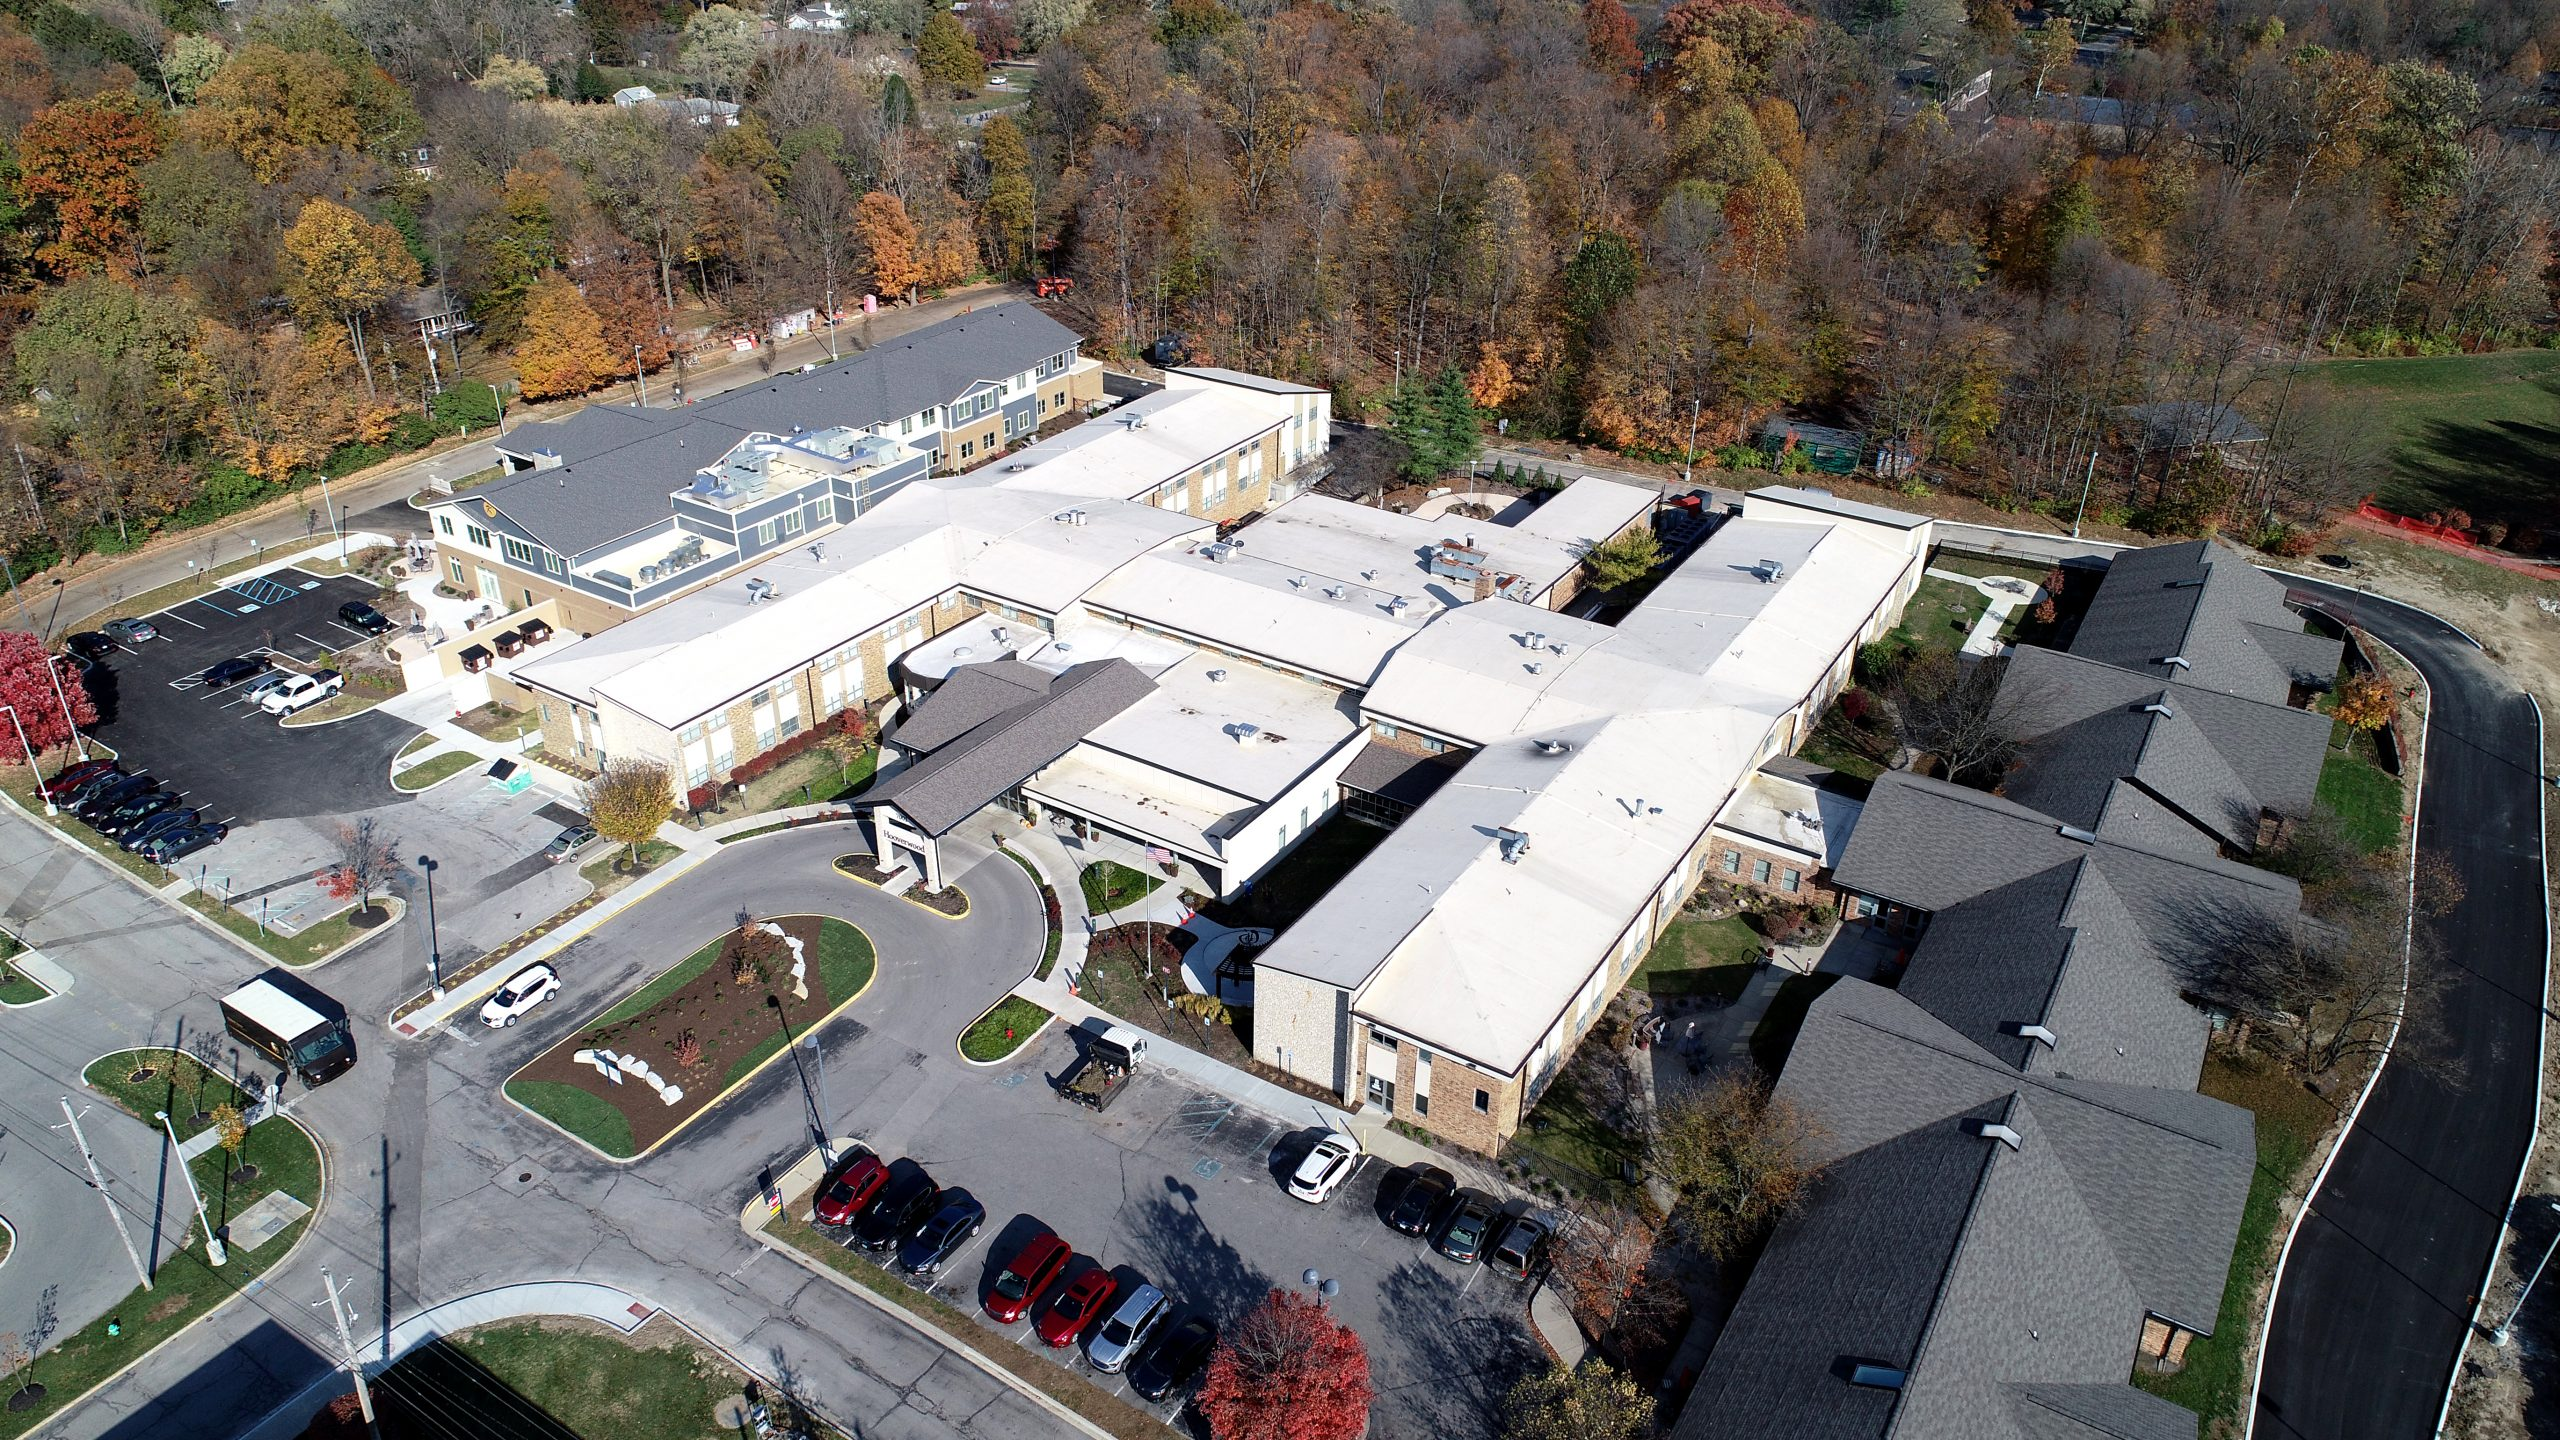 Hooverland assisted living. a ce reeve commercial roofing project